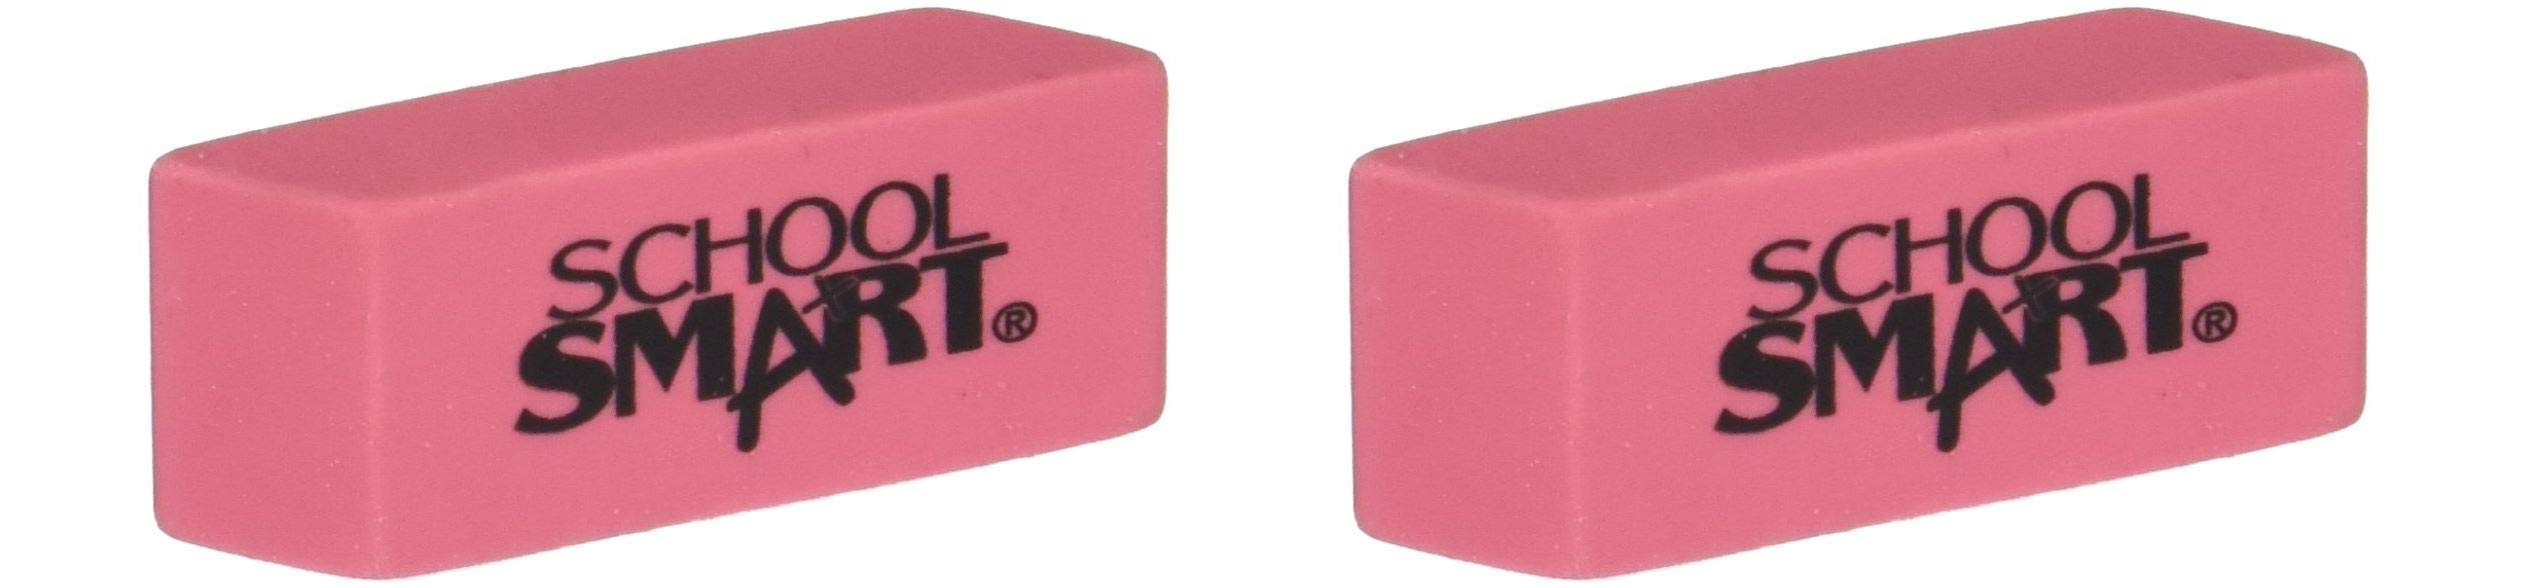 School Smart Beveled Erasers, Small, Pink, Pack of 36 (Twо Pаck, Pink)